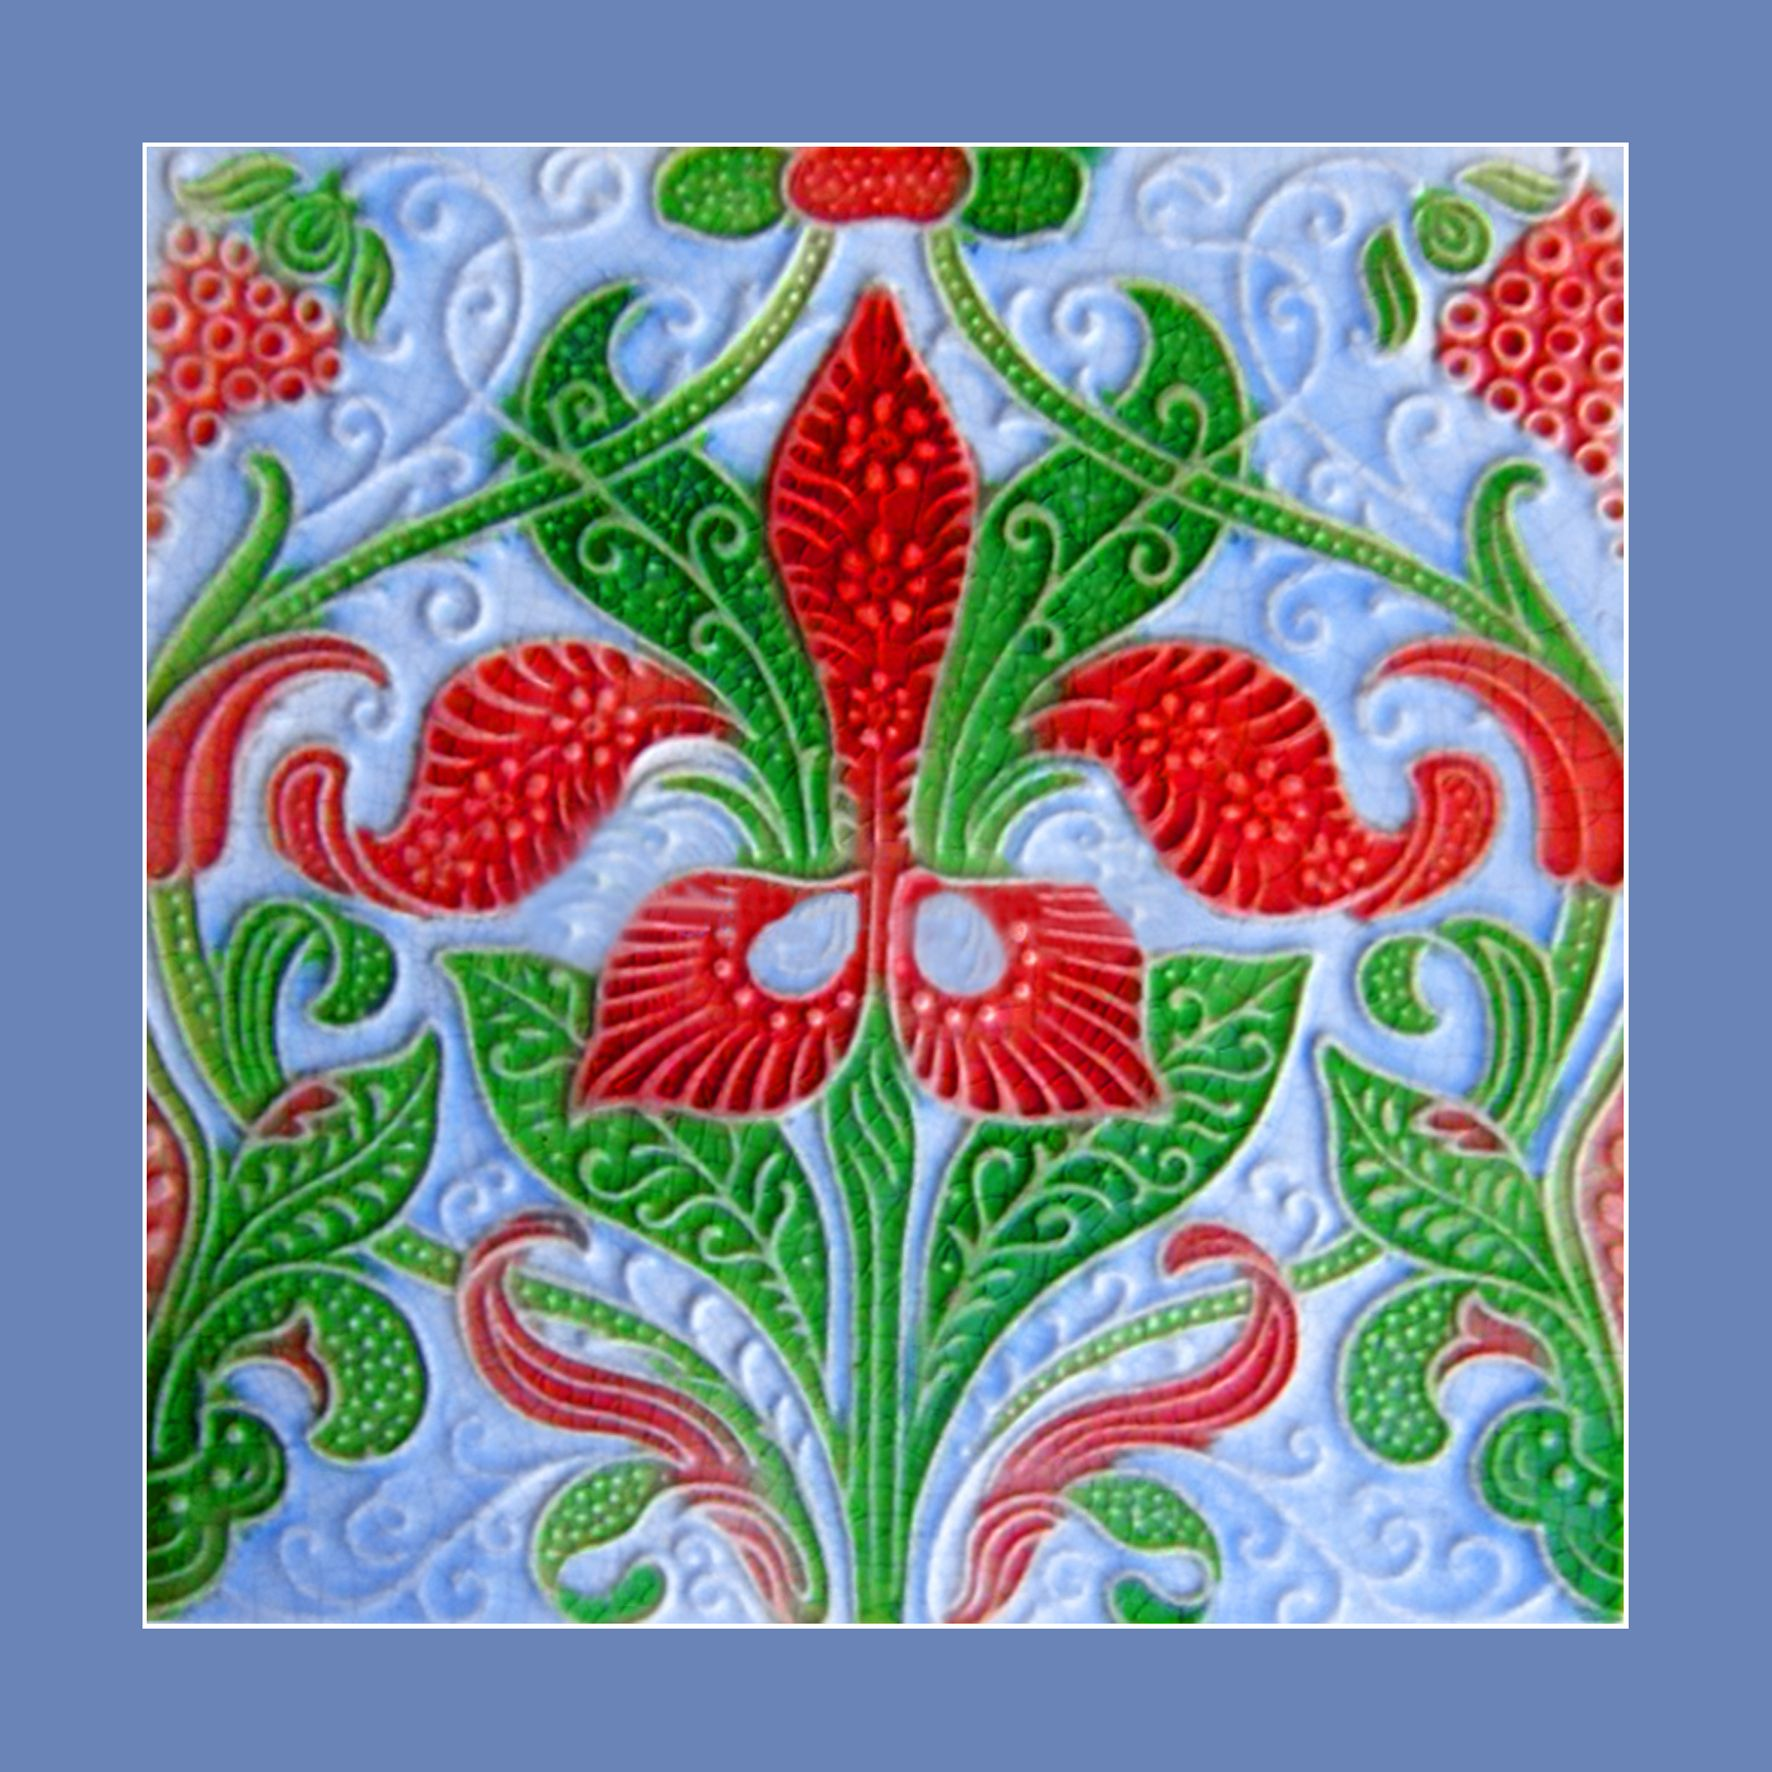 16 ceramic tile design by lewis day for pilkington buy as an e 16 ceramic tile design by lewis day for pilkington buy as an e card vintage tileart nouveau dailygadgetfo Images